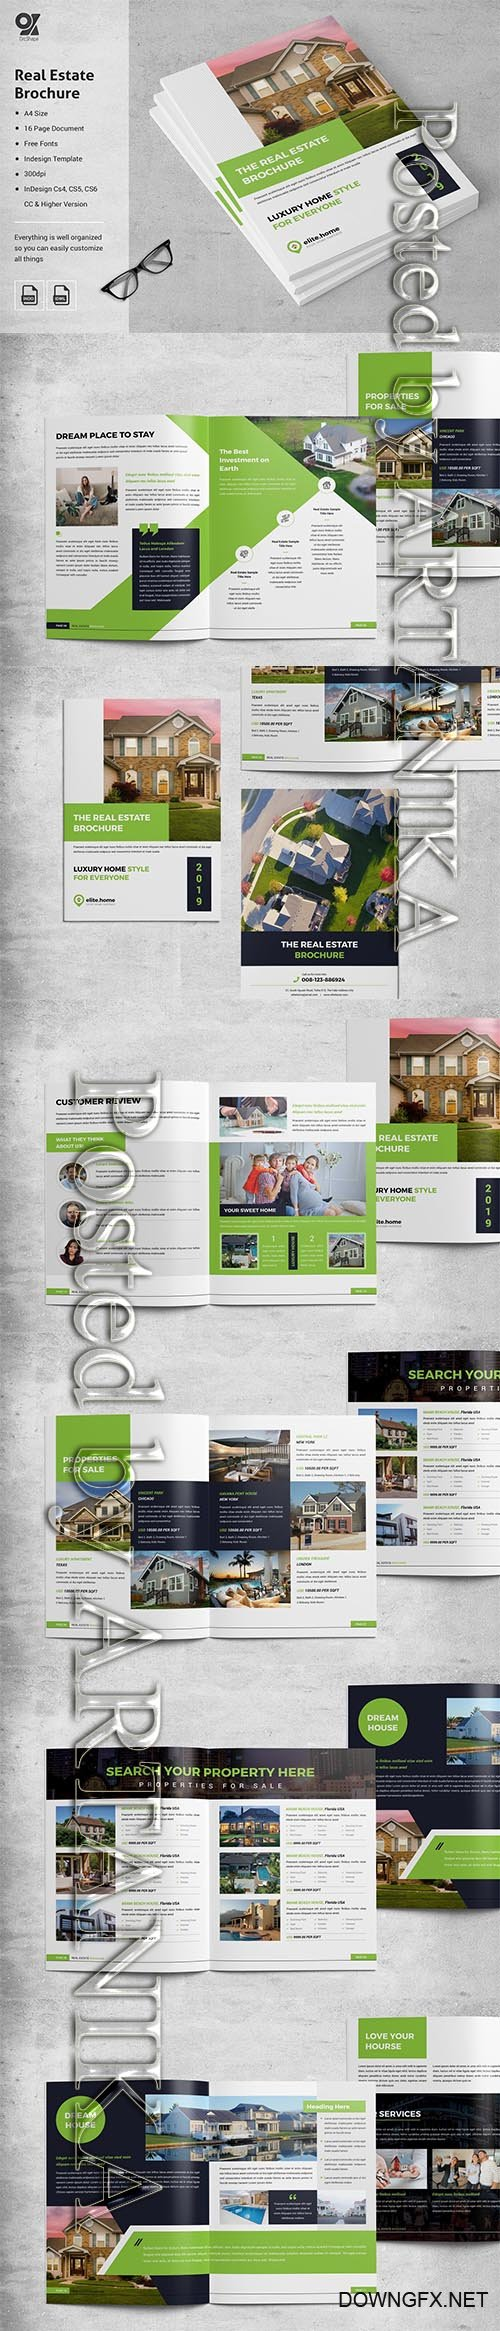 Real Estate Brochure 3861835